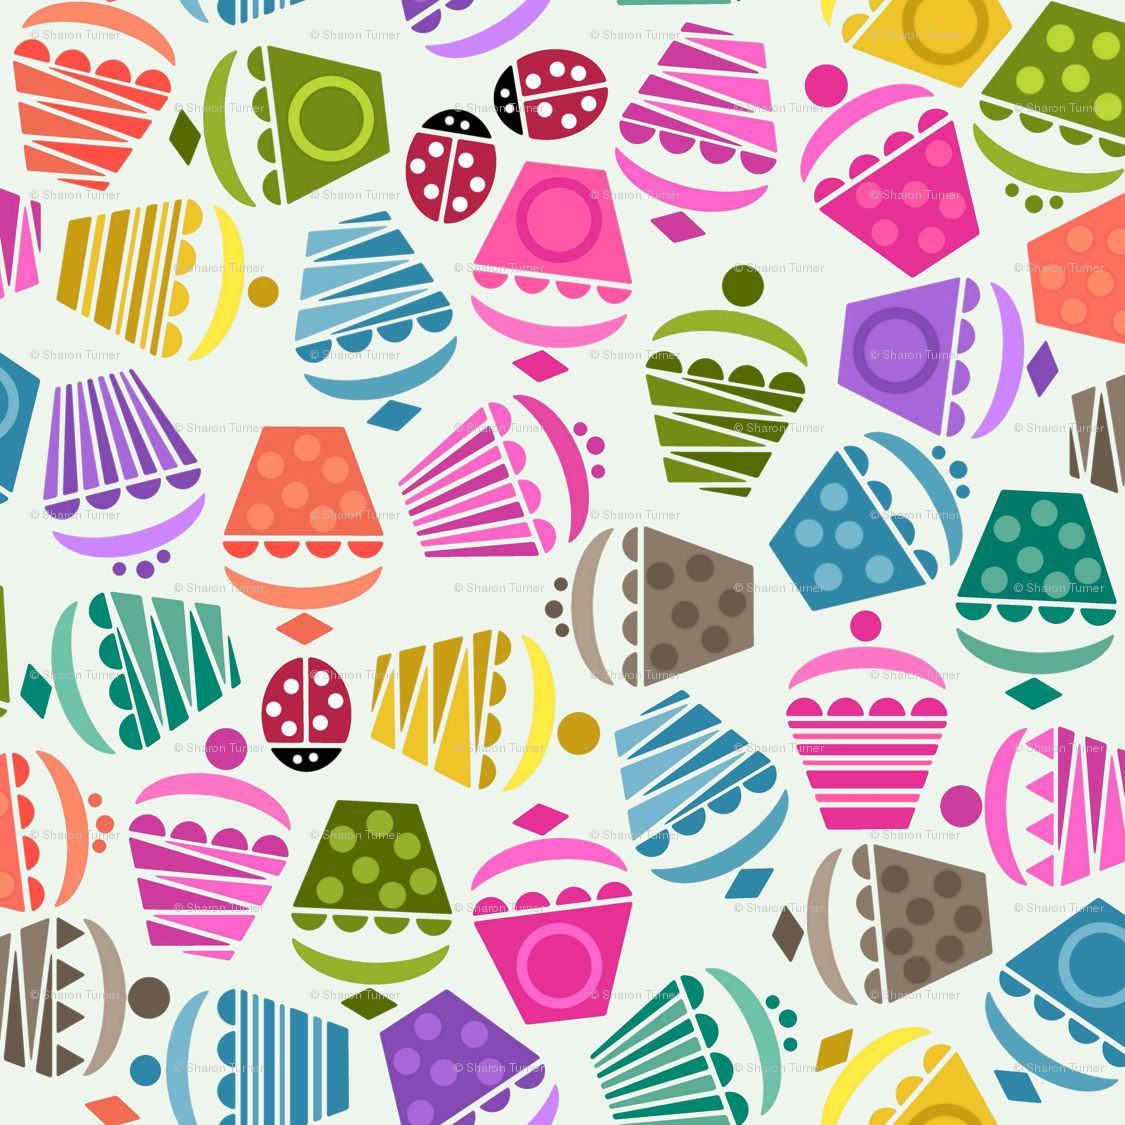 Cupcakes And Ladybugs Small Wallpaper